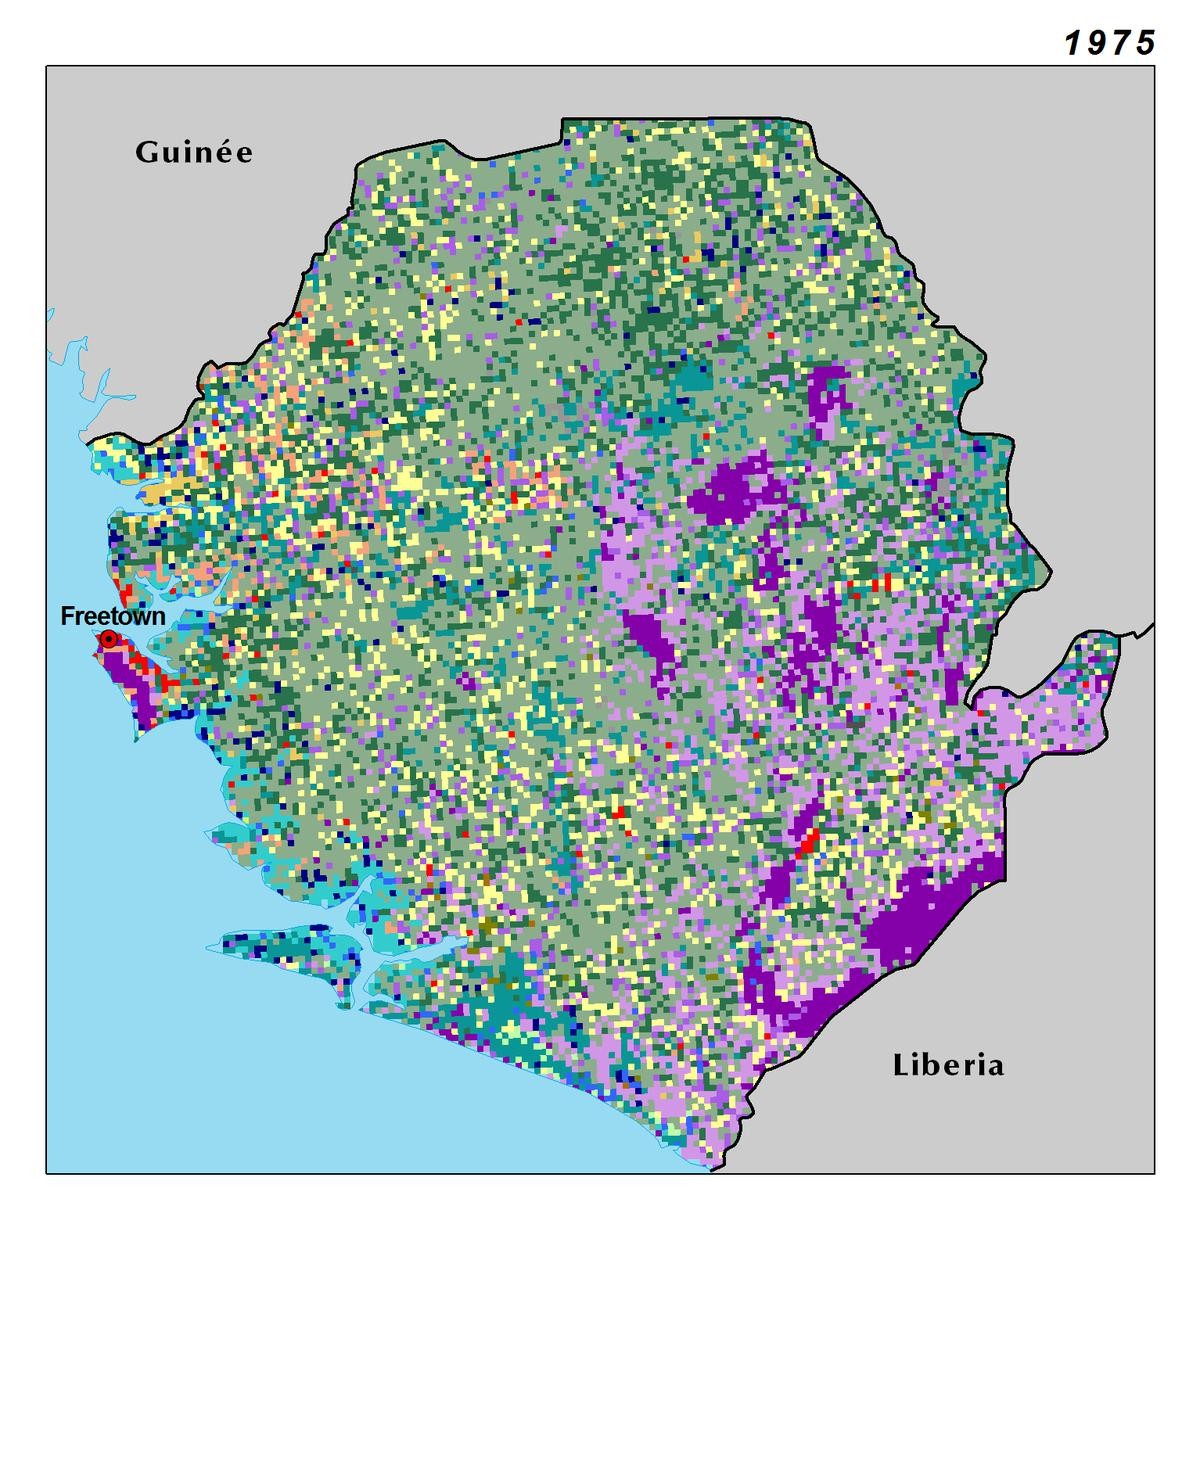 Land use and land cover in Sierra Leone in 1975